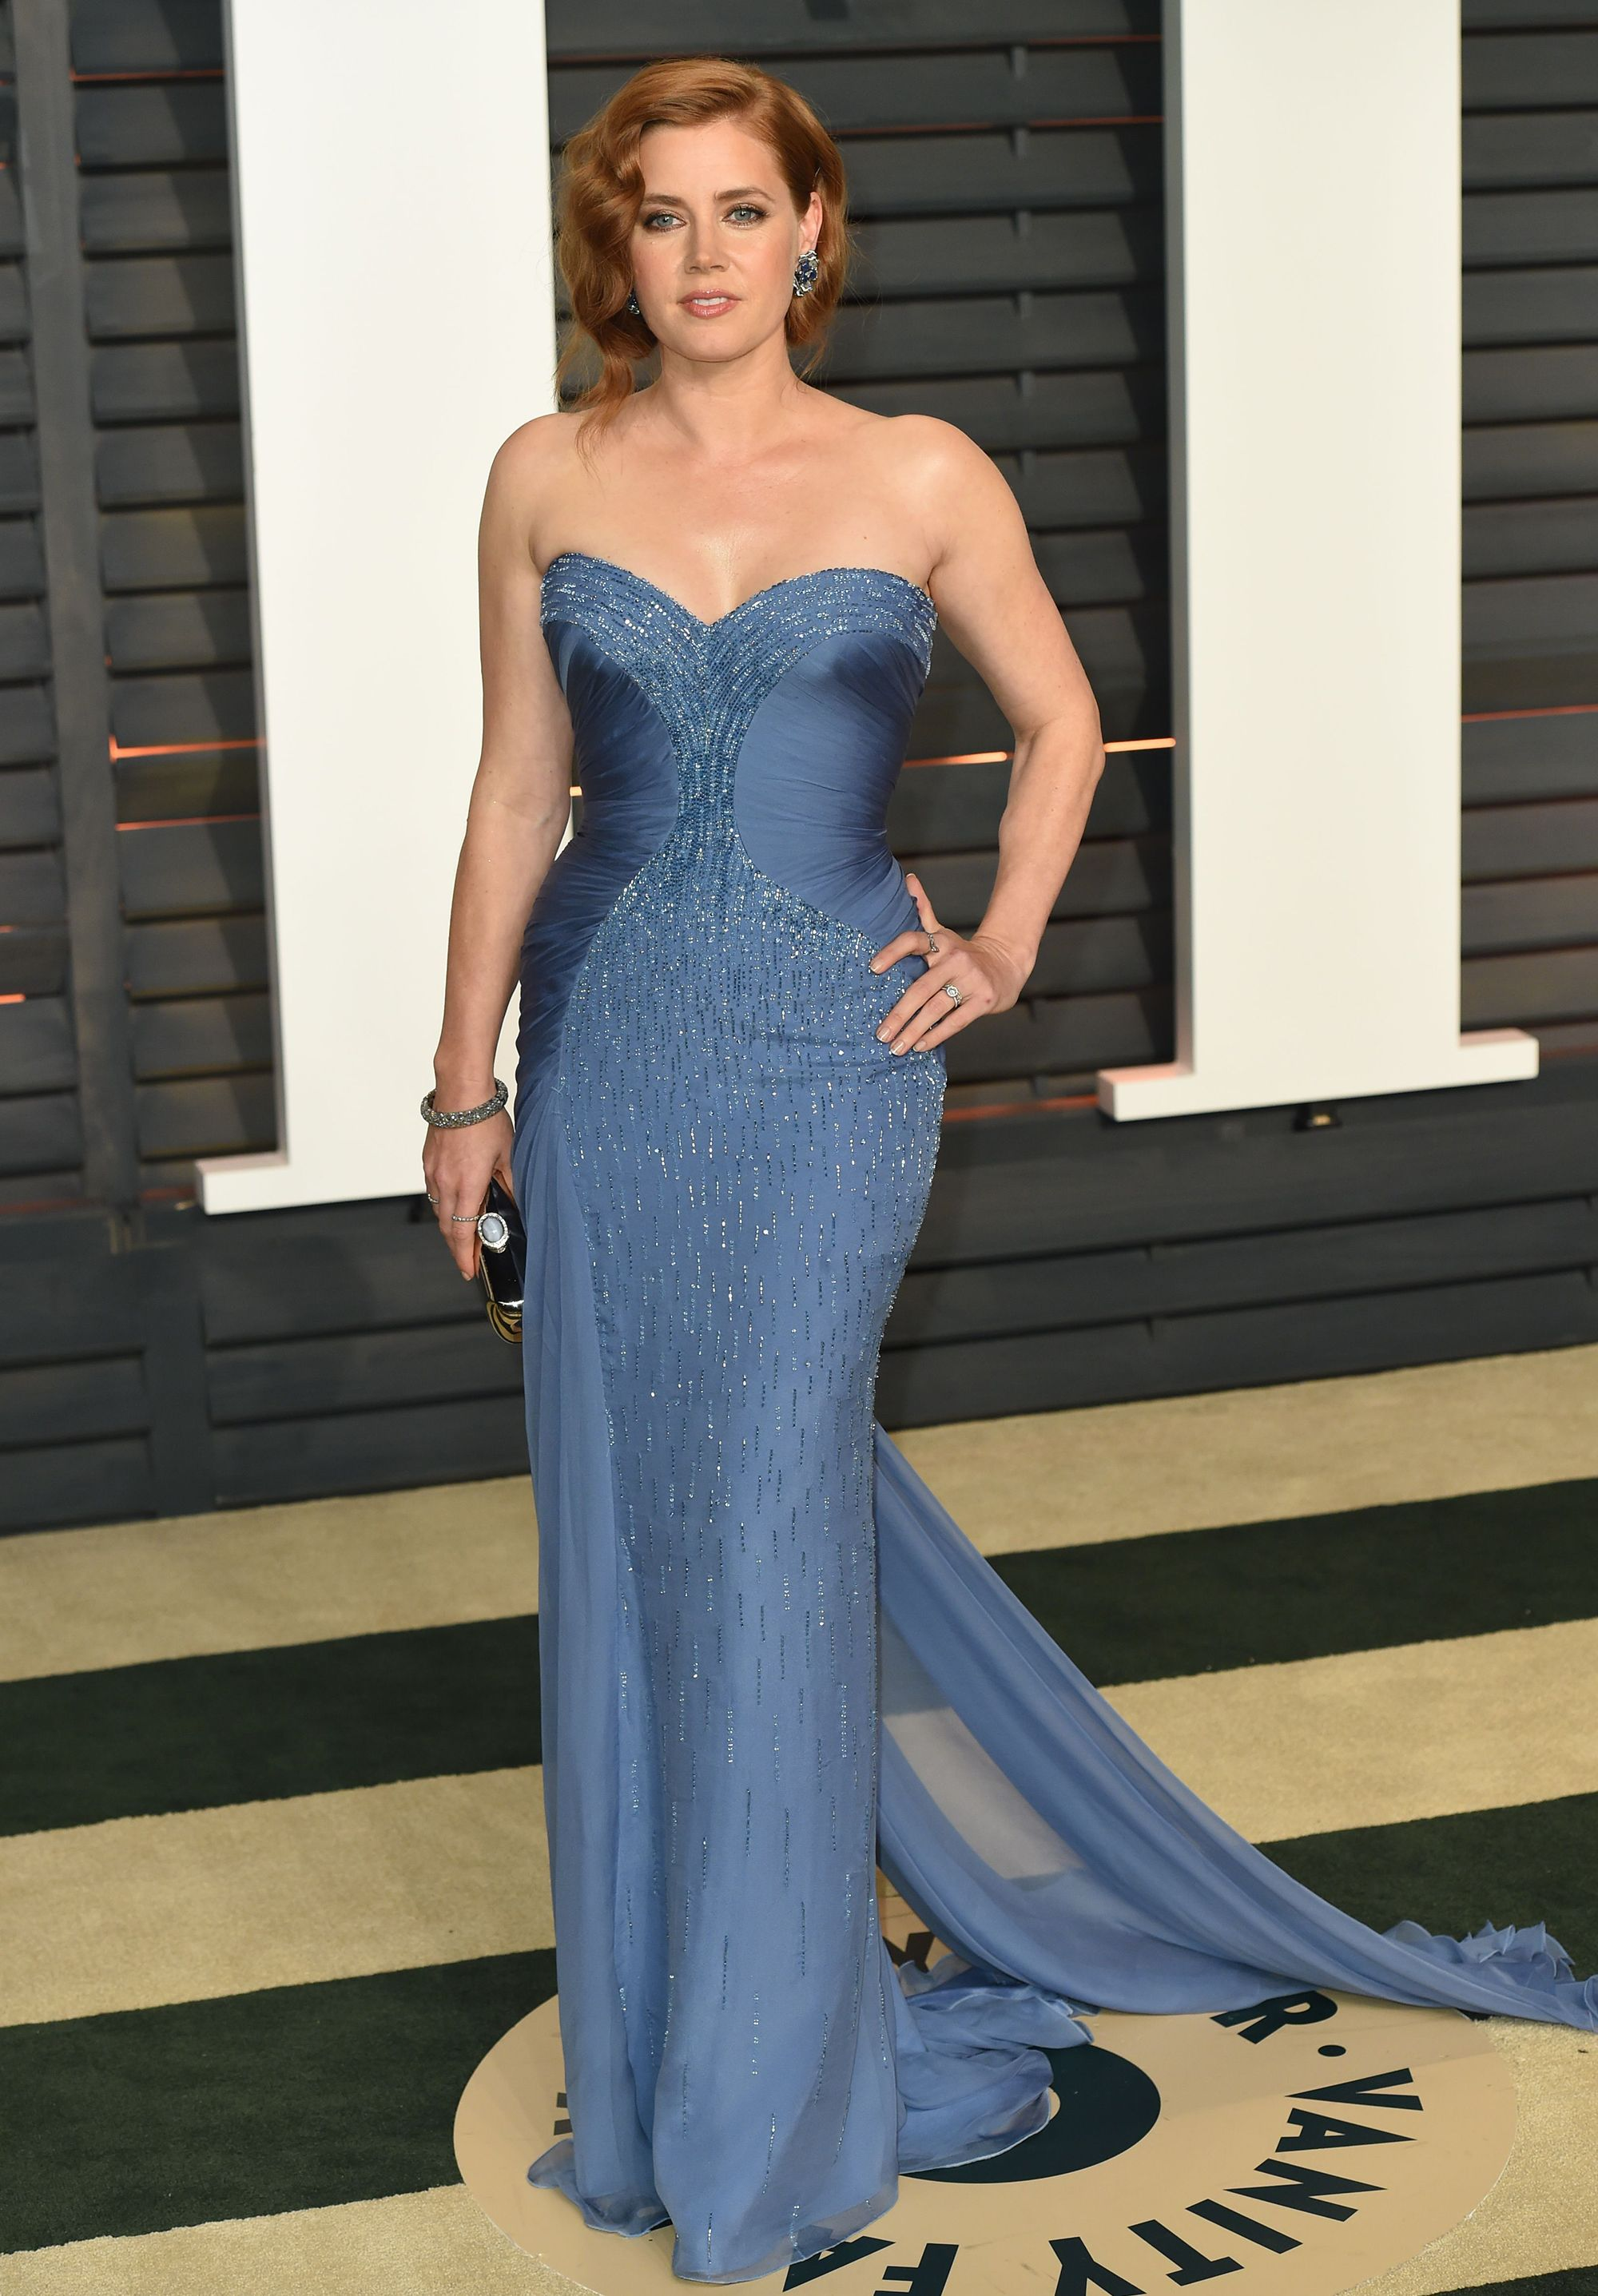 The Oscars after party dresses were pretty nice, too | Vanity fair ...